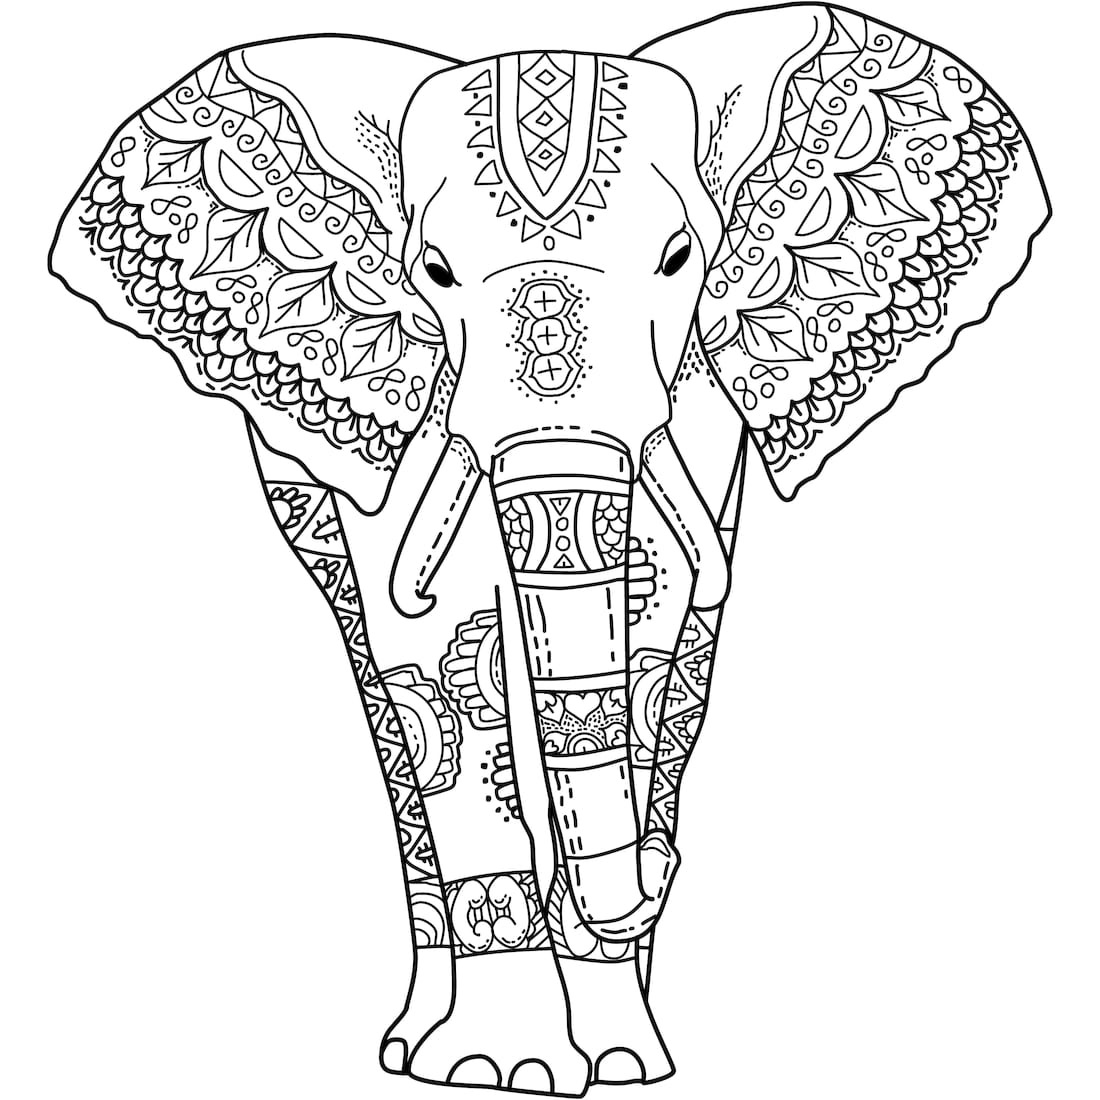 coloring pages elephants print download teaching kids through elephant coloring coloring pages elephants